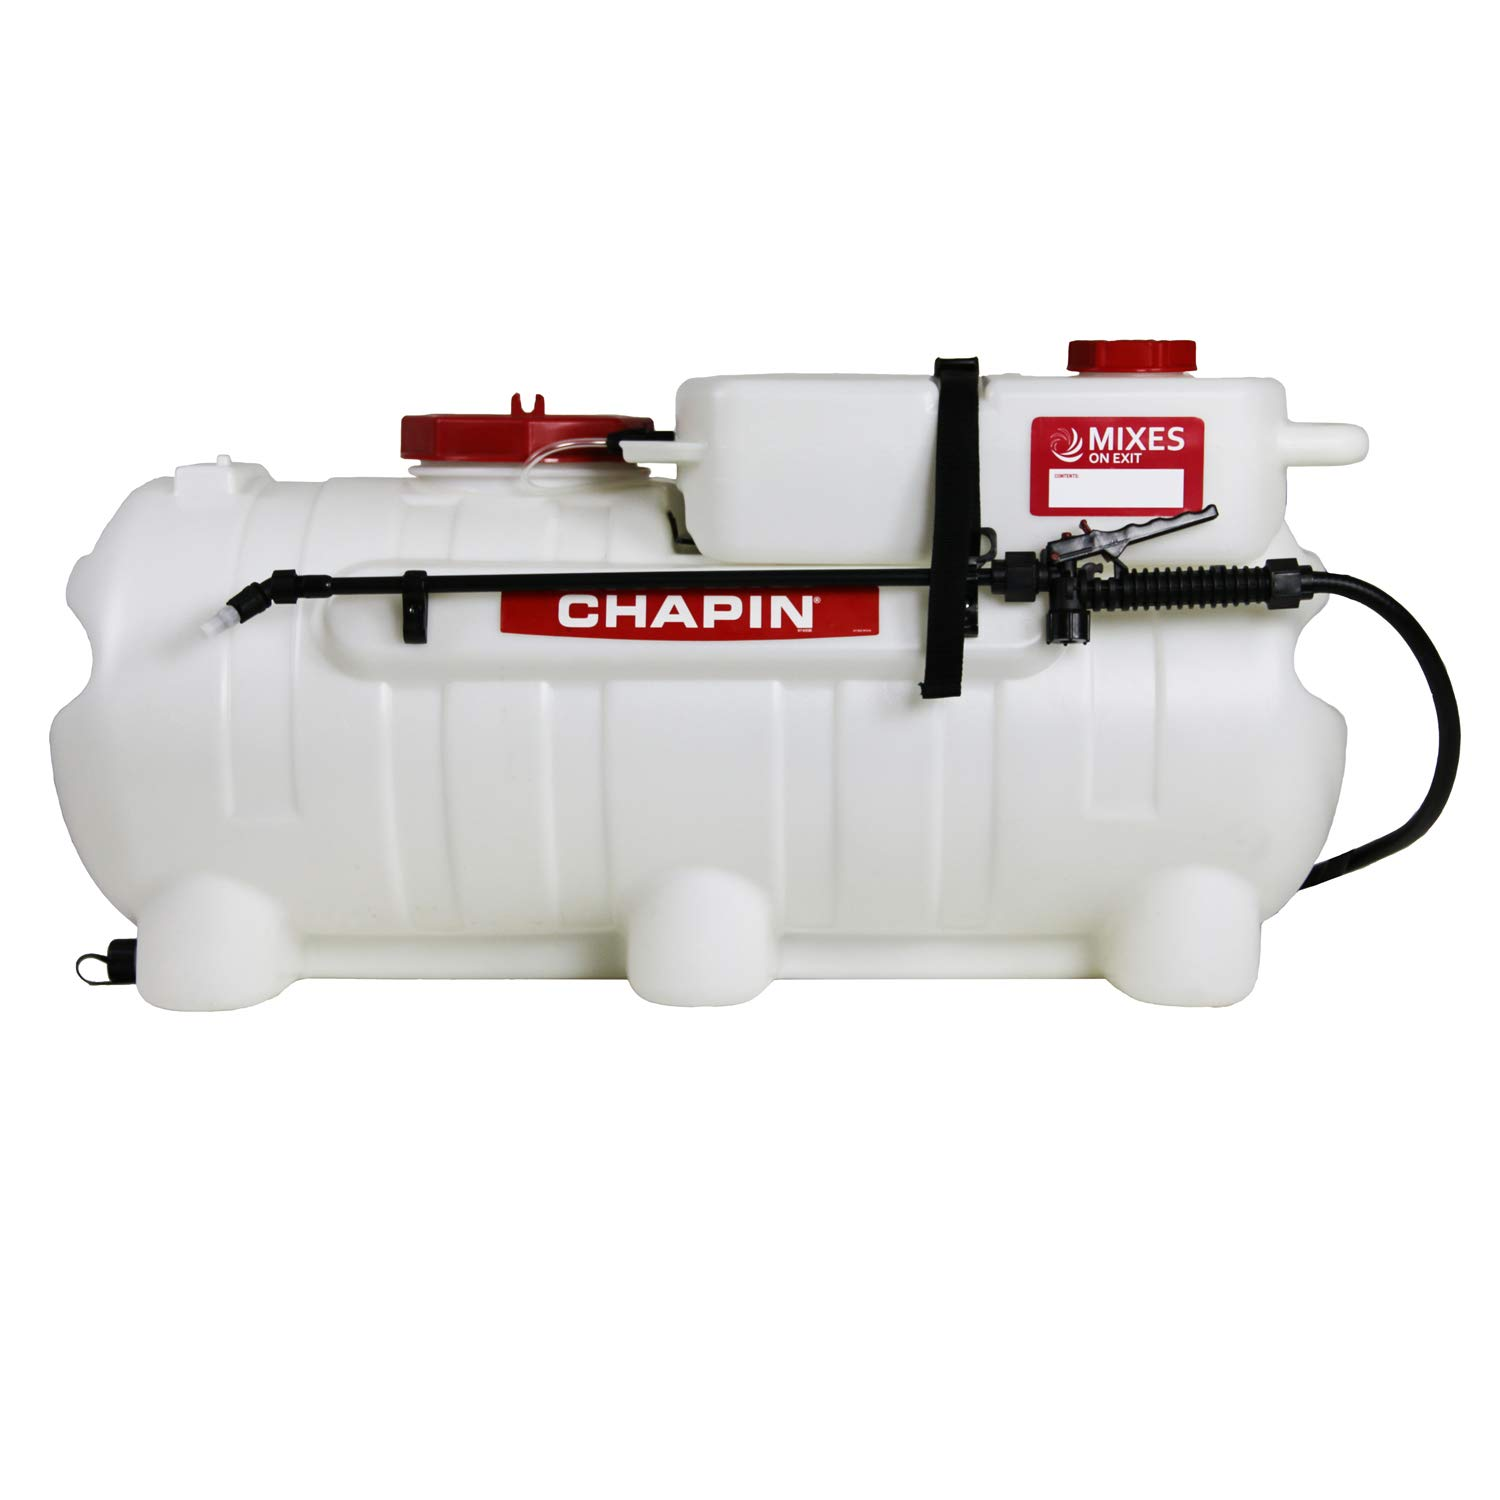 Chapin International 97561 Chapin Presents The First-Ever Clean-Tank ATV Spraying System, 25 Gallon Sprayer, Translucent